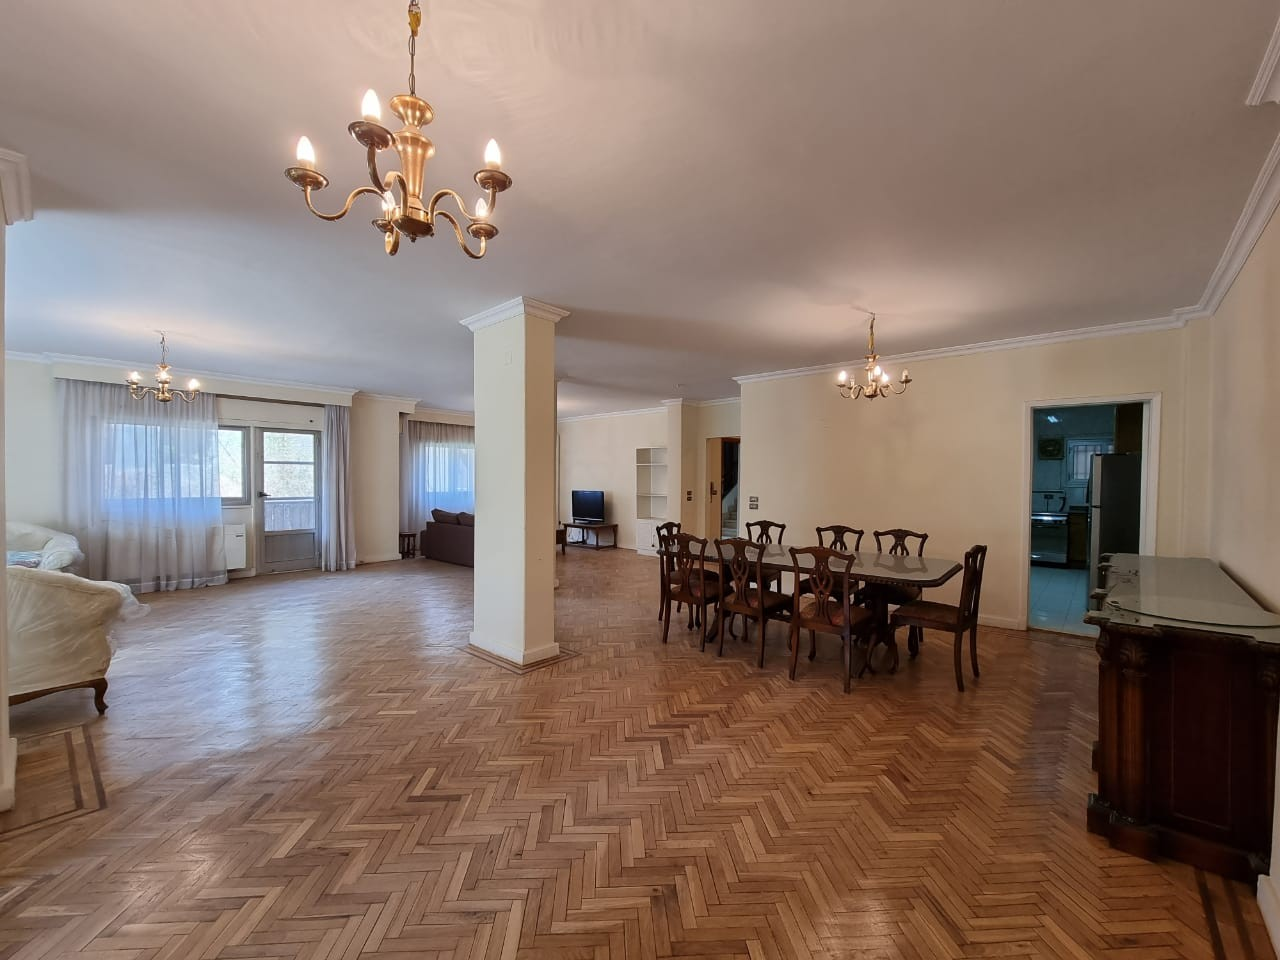 Outstanding Furnished Apartment For Rent In Sarayat El Maadi - 4875 Featured Image